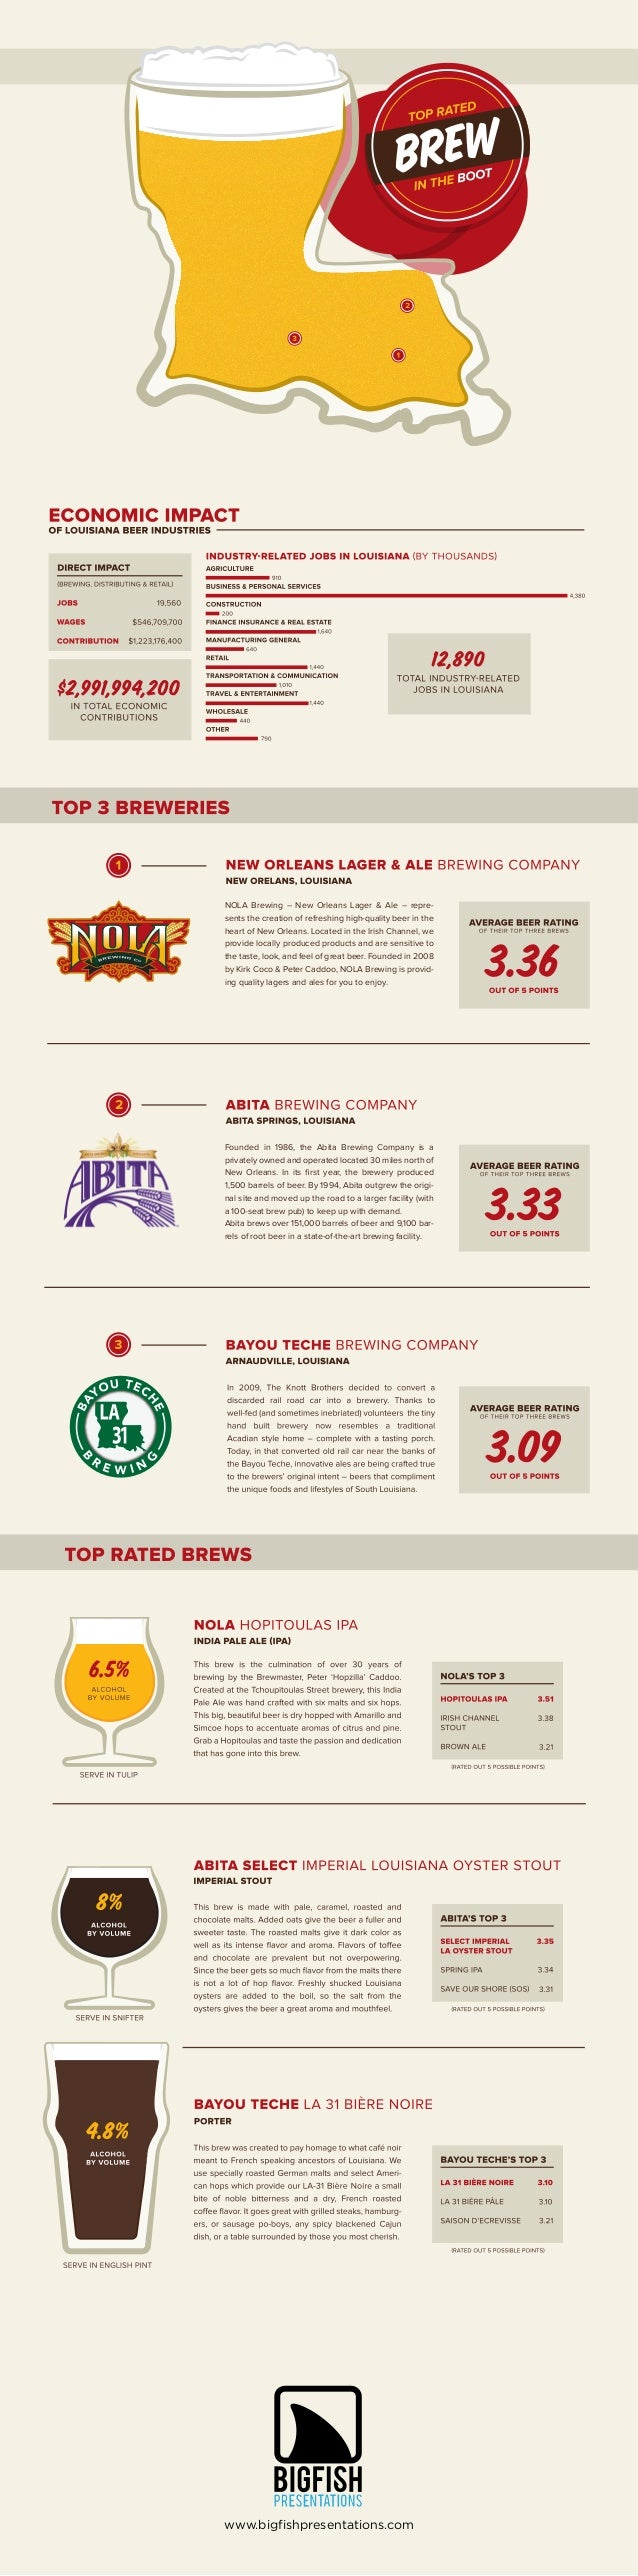 Top Rated Brews in the Boot - Beerfographic